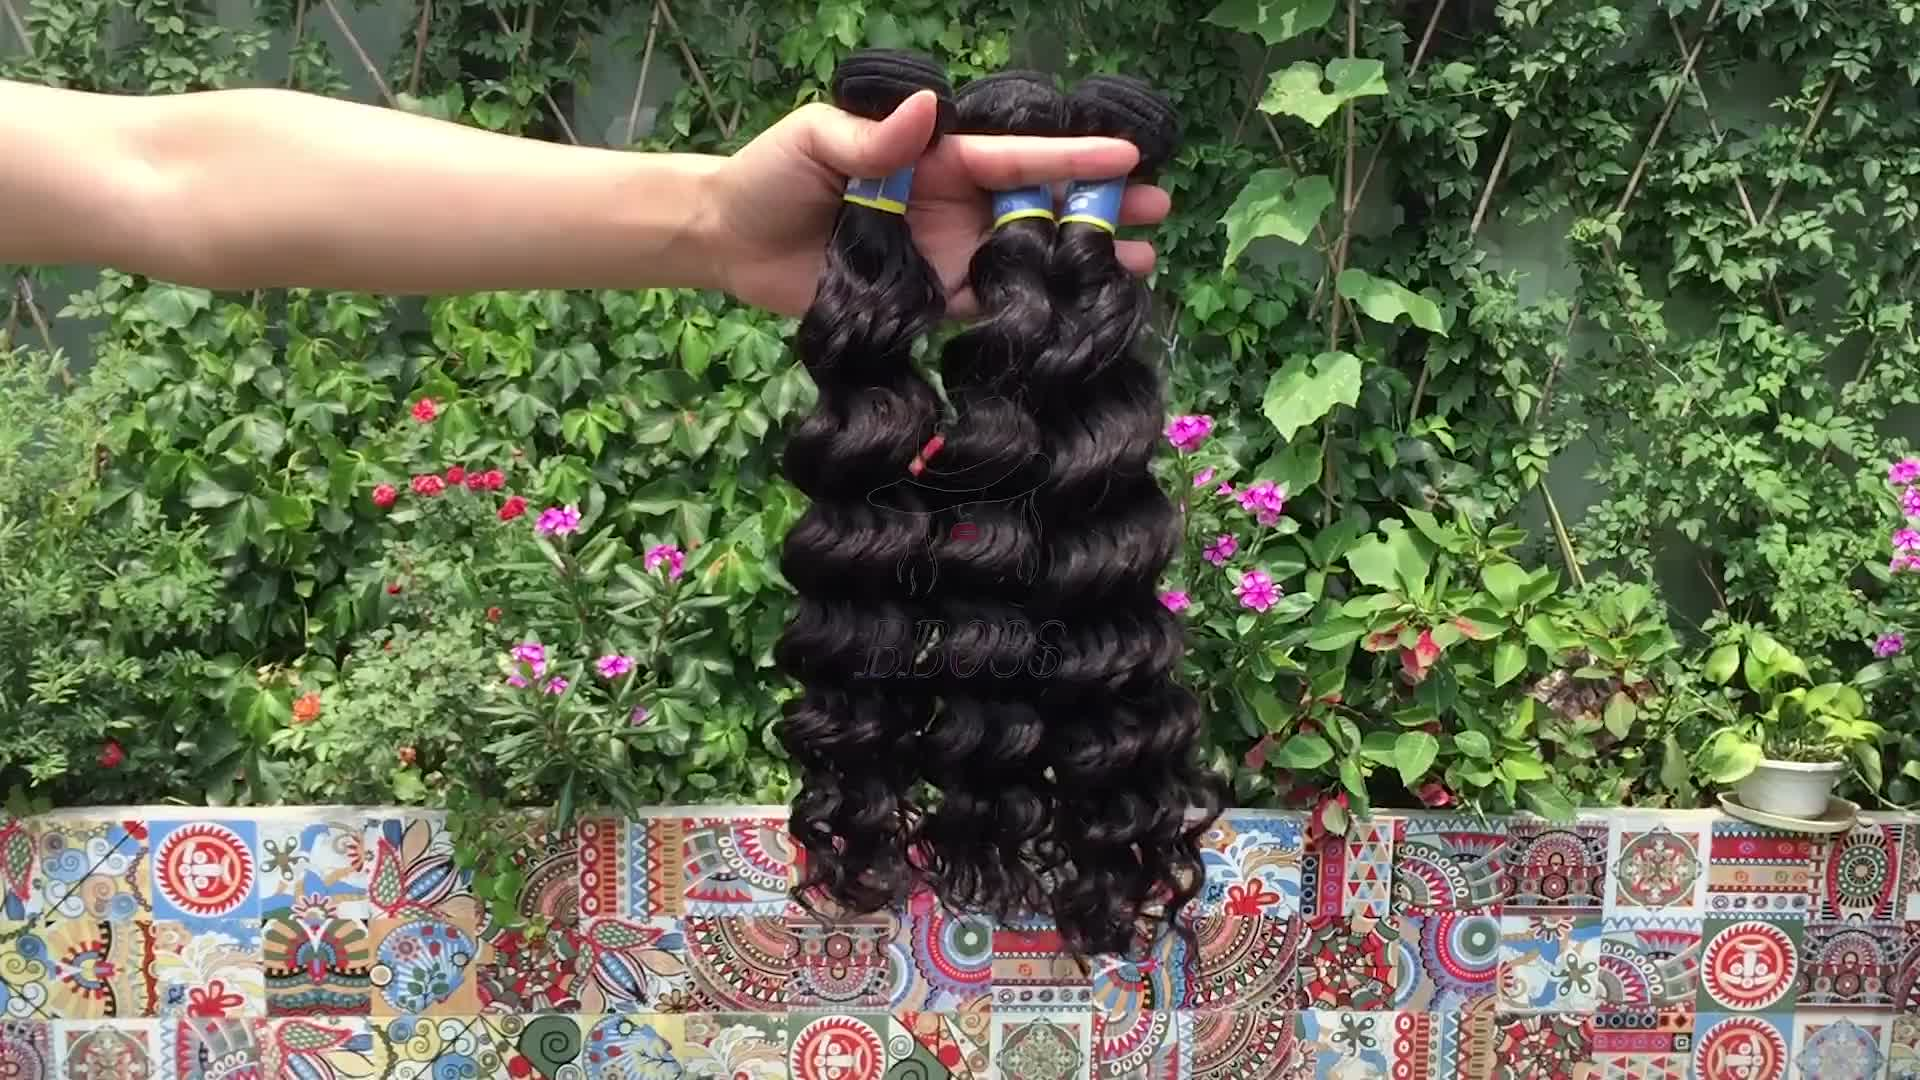 cheap african hair wig dropshipping wig with closure,Easy to dye spanish wave 4/613 full lace wig silk top,yak hair wig price